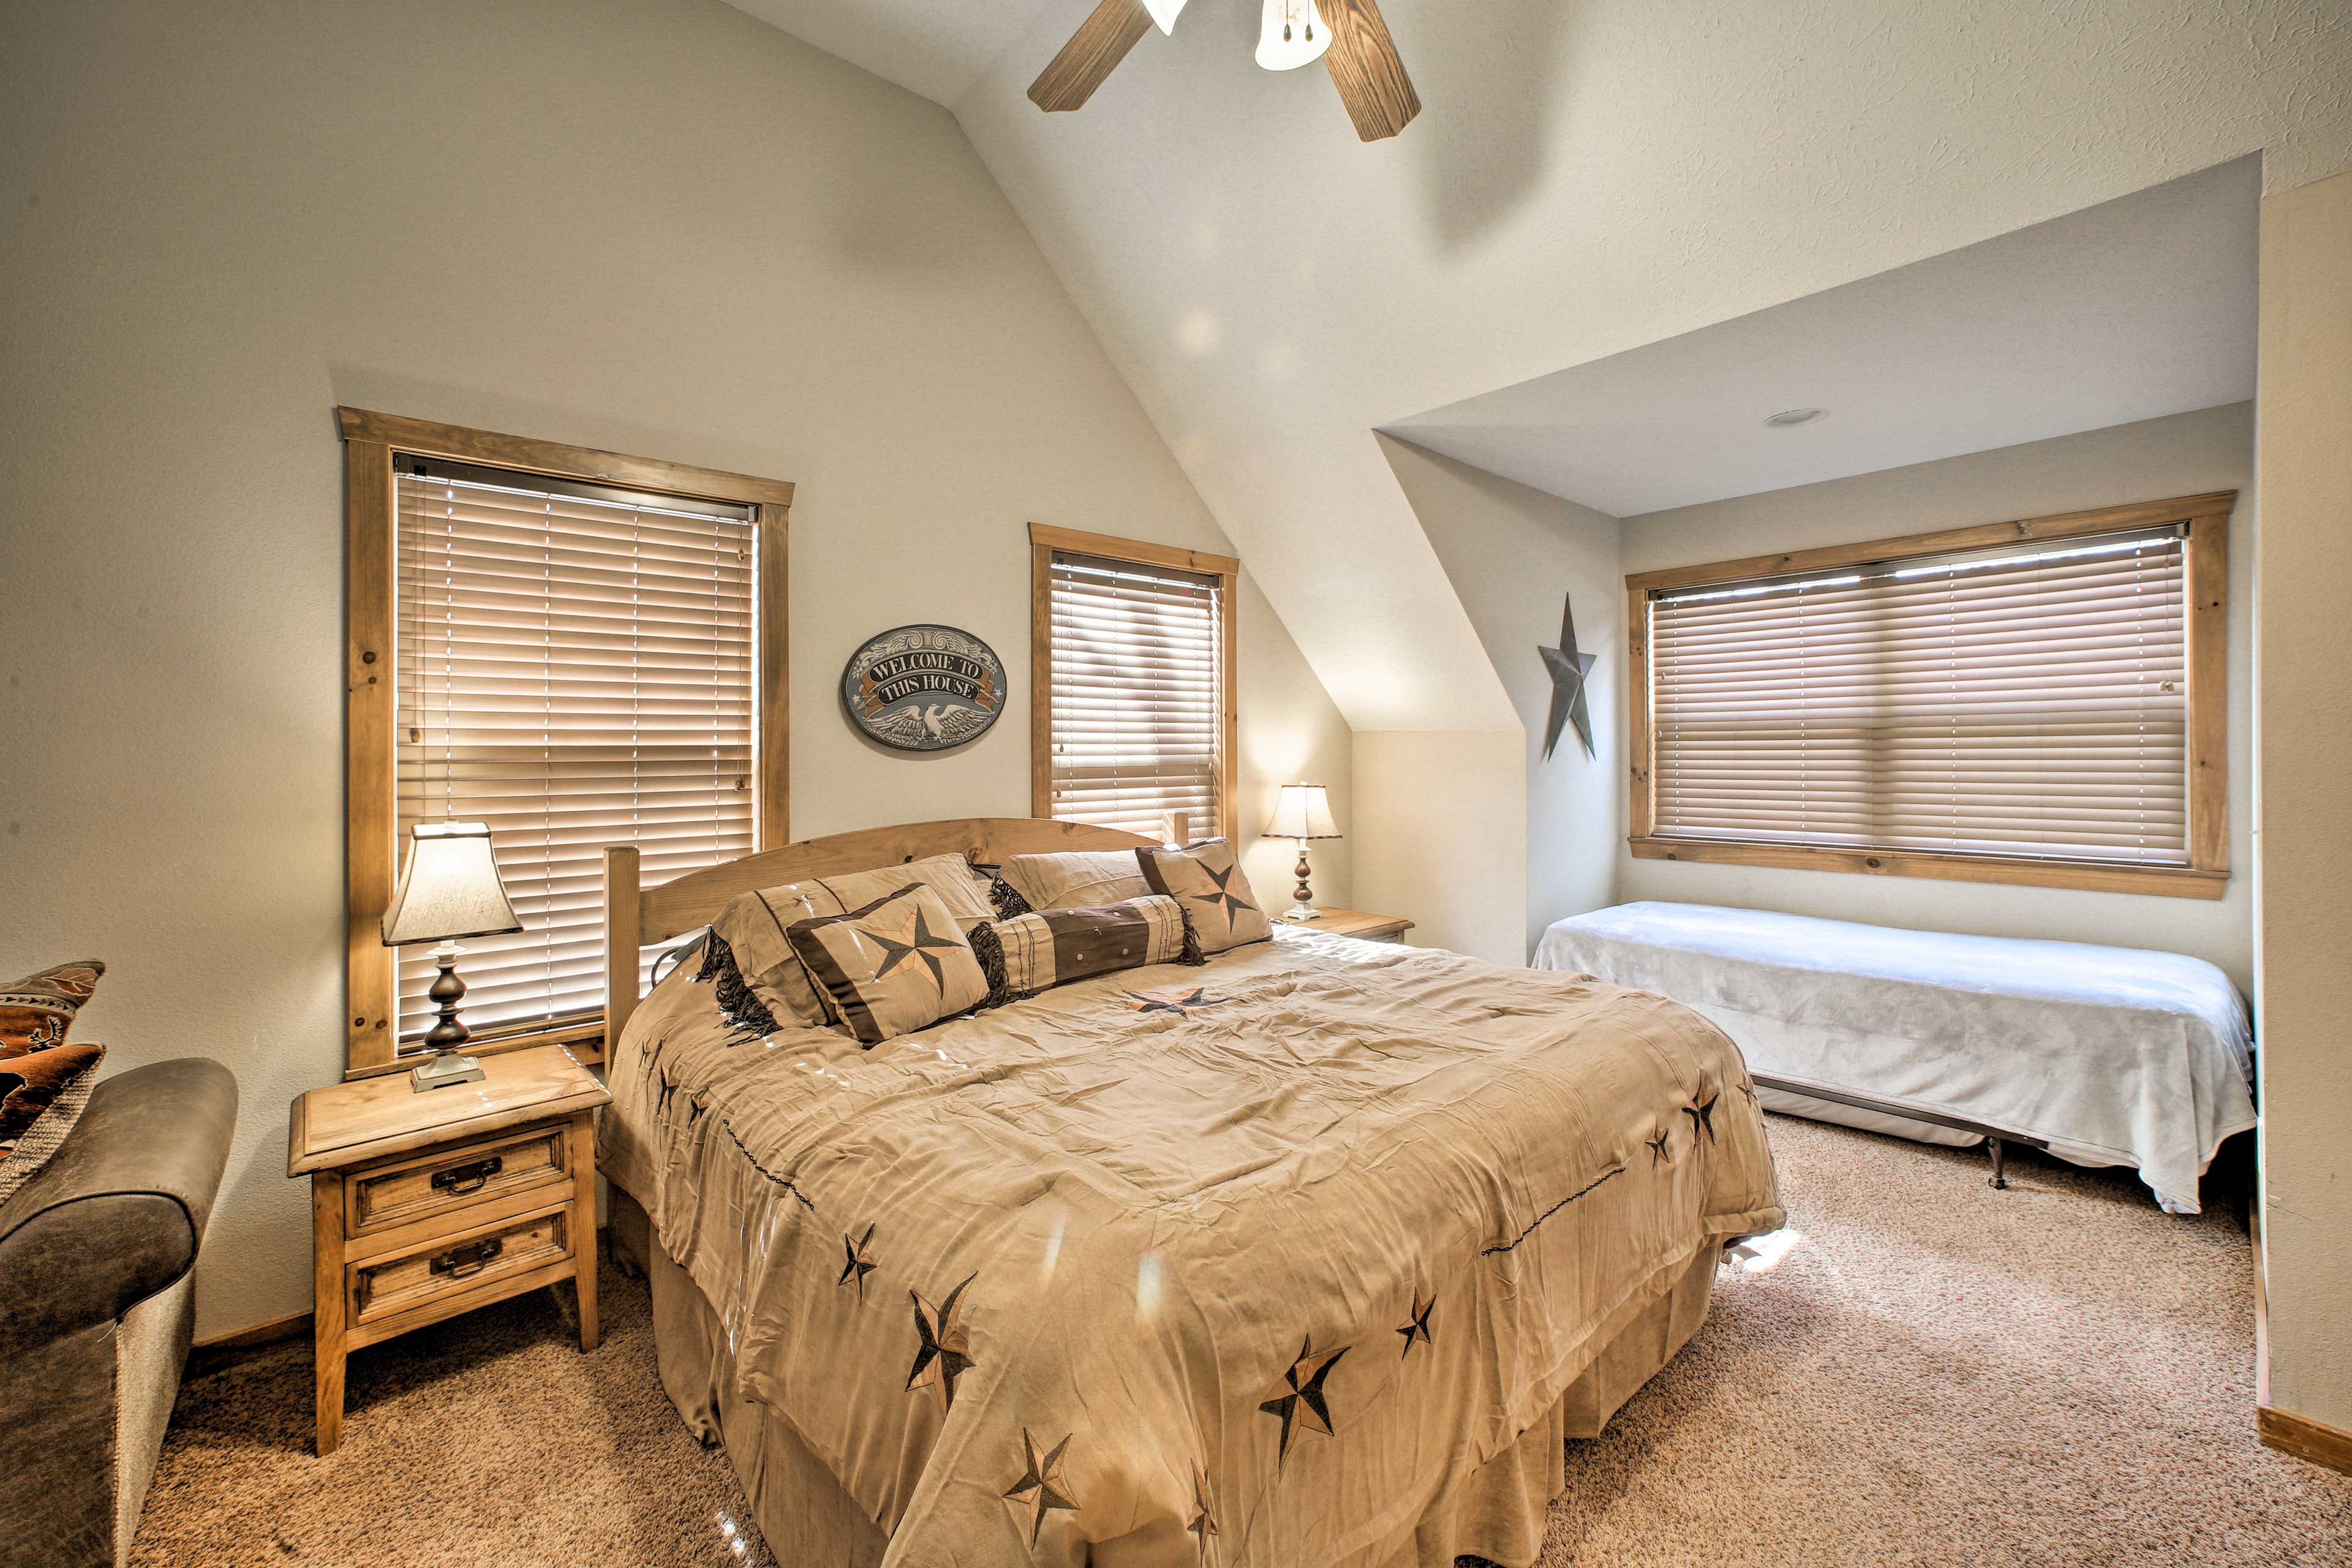 The 4th bedroom includes a king bed, twin bed, full sleeper sofa, & a TV!